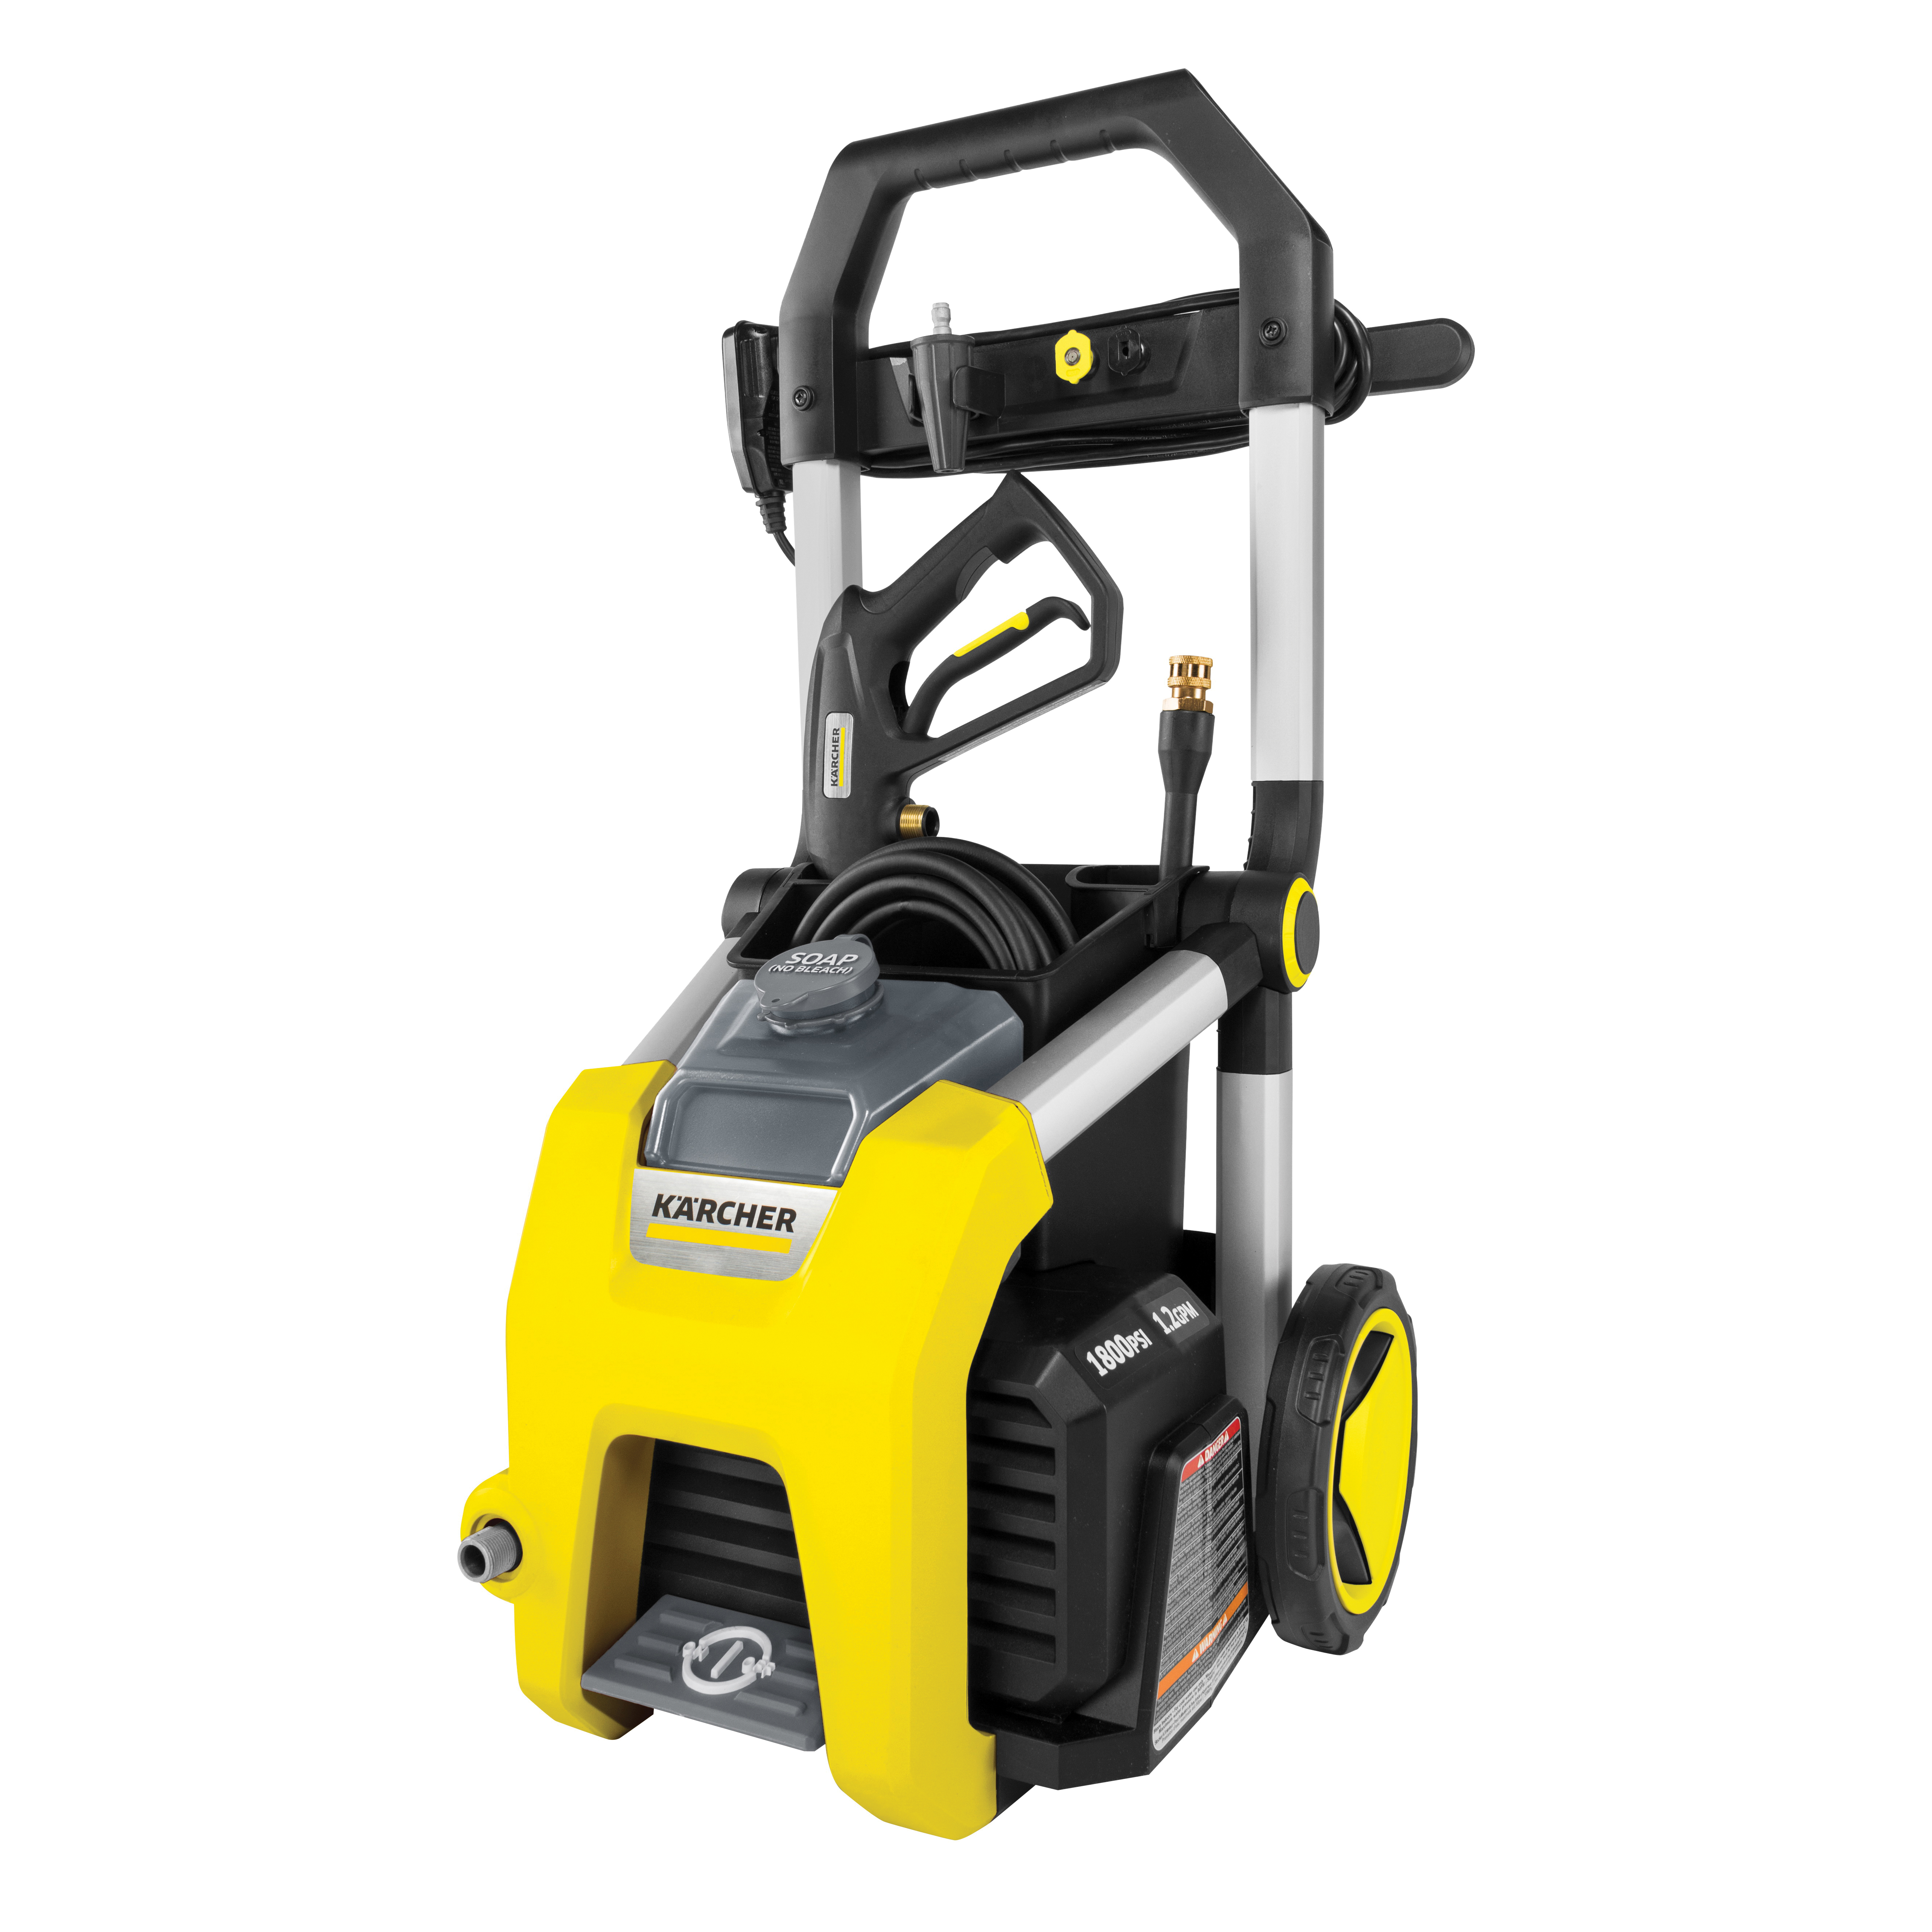 Picture of Karcher K1800 Pressure Washer, 1 -Phase, 13 A, 120 V, Axial Cam Pump, 1800 psi Operating, 1.2 gpm, Spray Nozzle